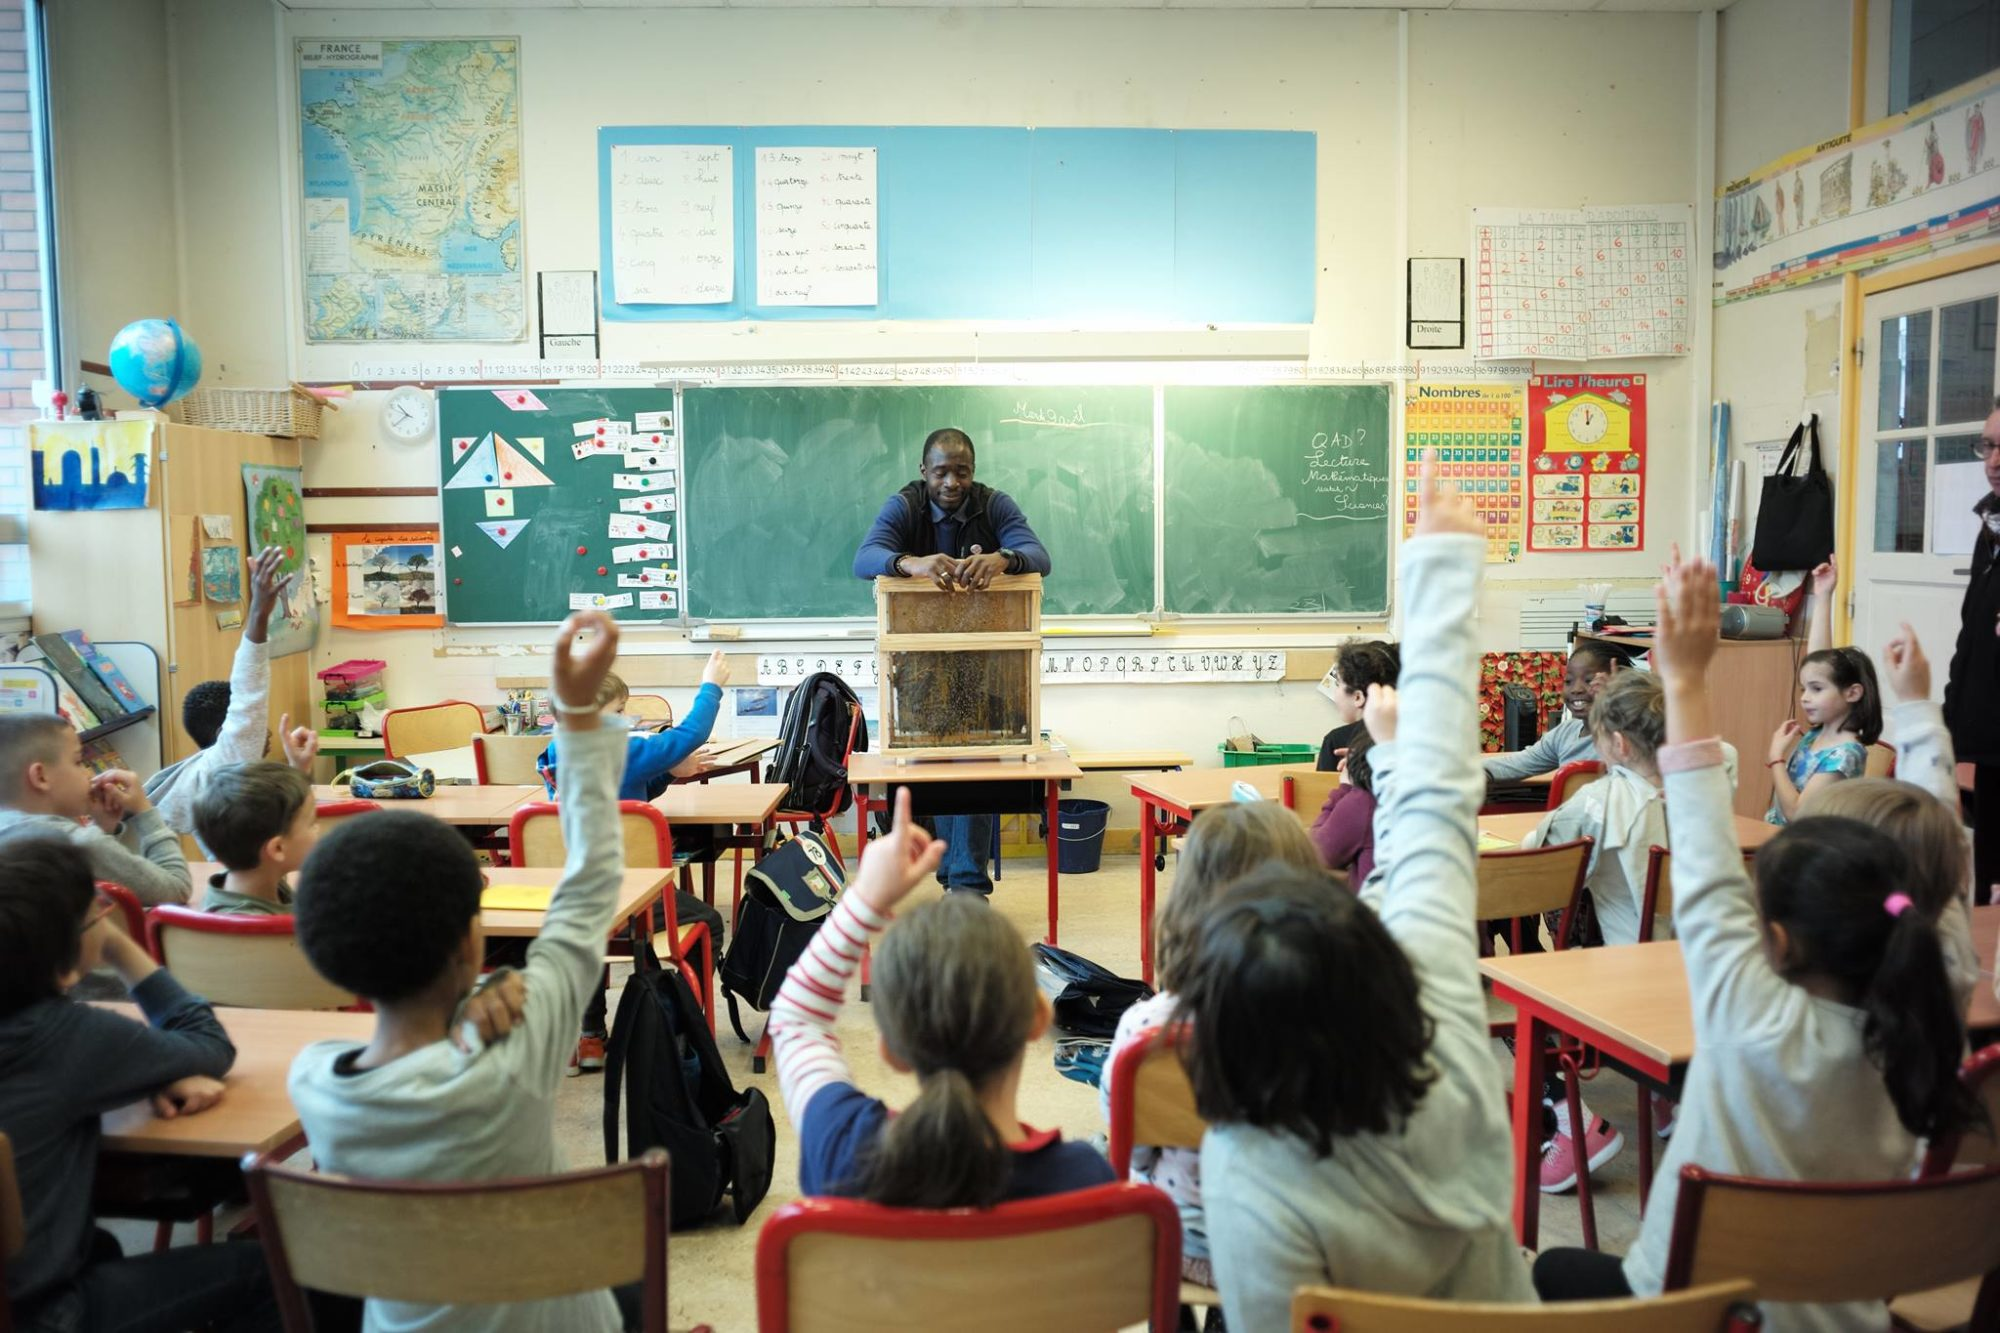 A man teaches children about bees in a classroom.